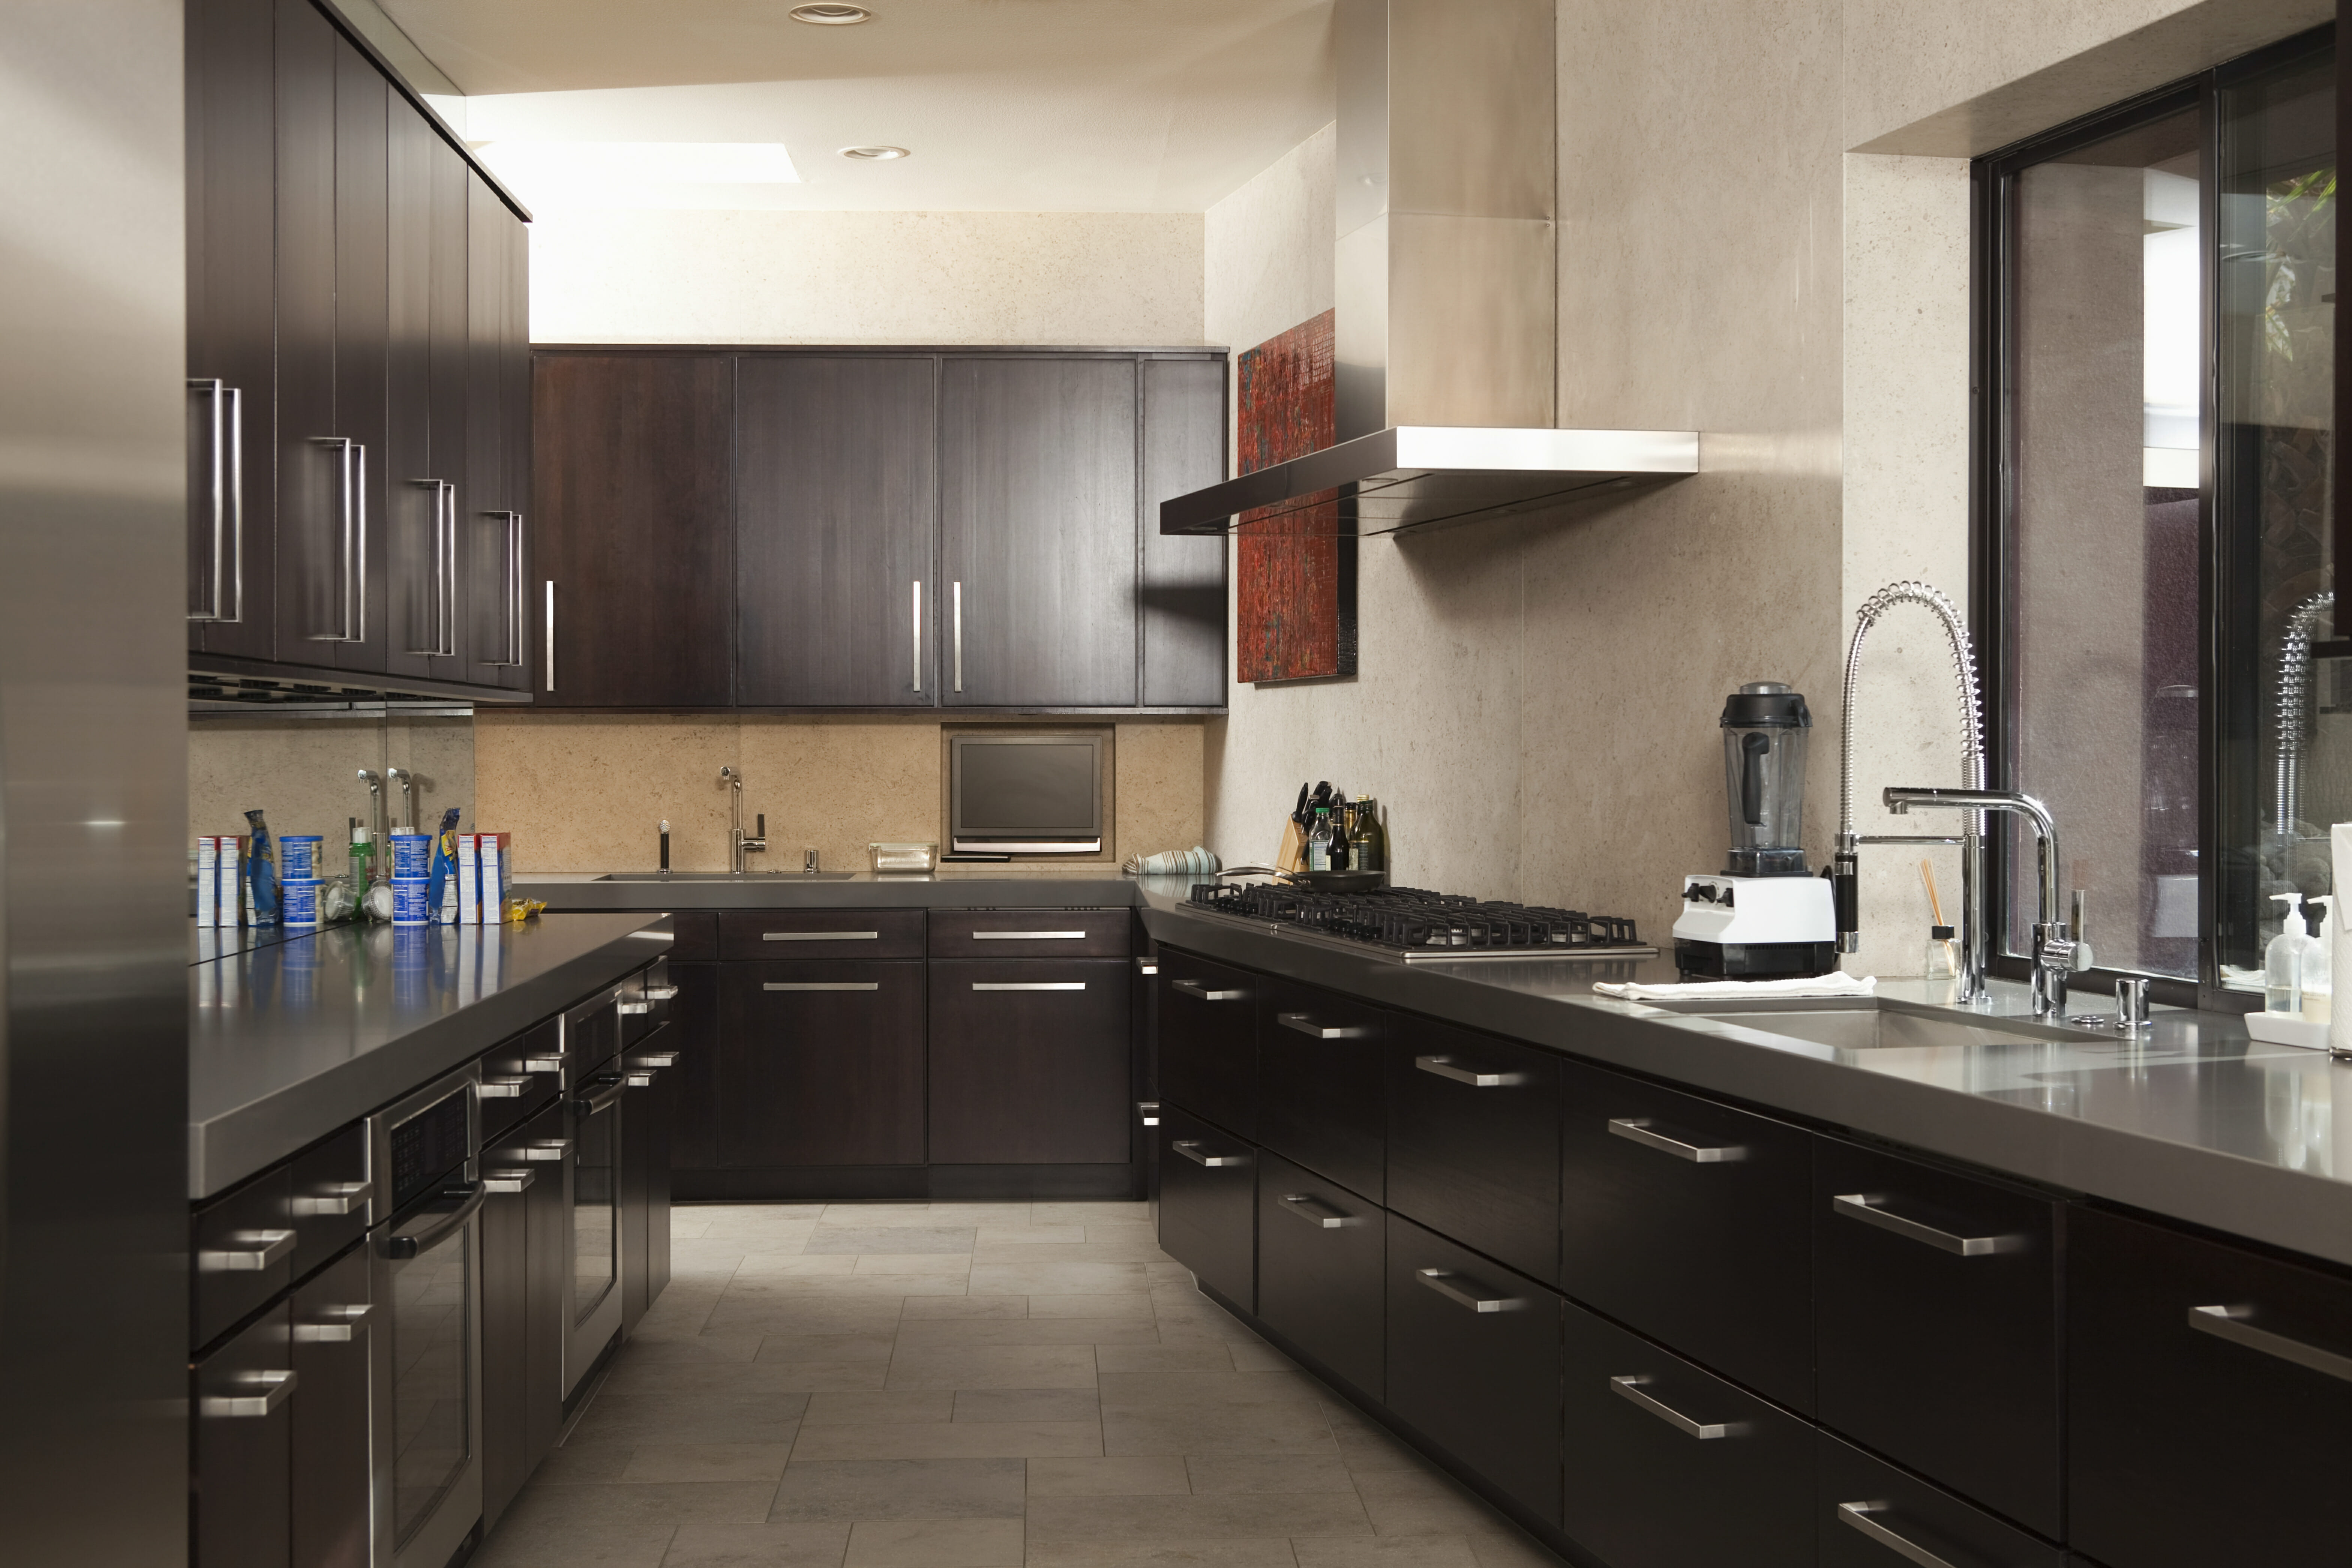 Semi-matte cabinets like these provide some light reflection, but a lighter floor, walls, and metallic workspaces prevent the room from feeling too dark, but still use a sleek black color as the room's biggest feature.